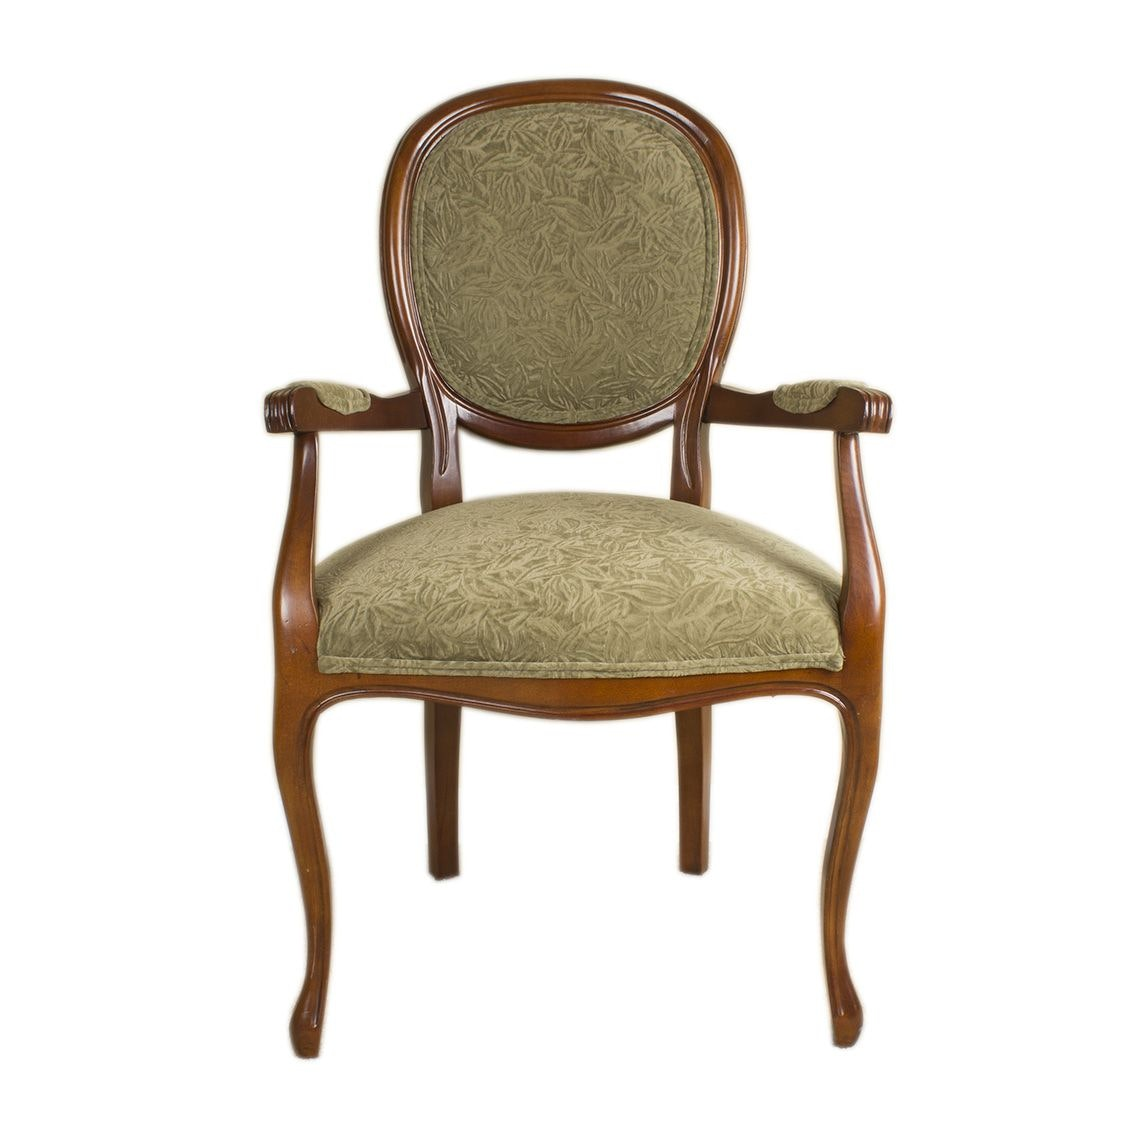 French Provincial Style Oval Back Fauteuil